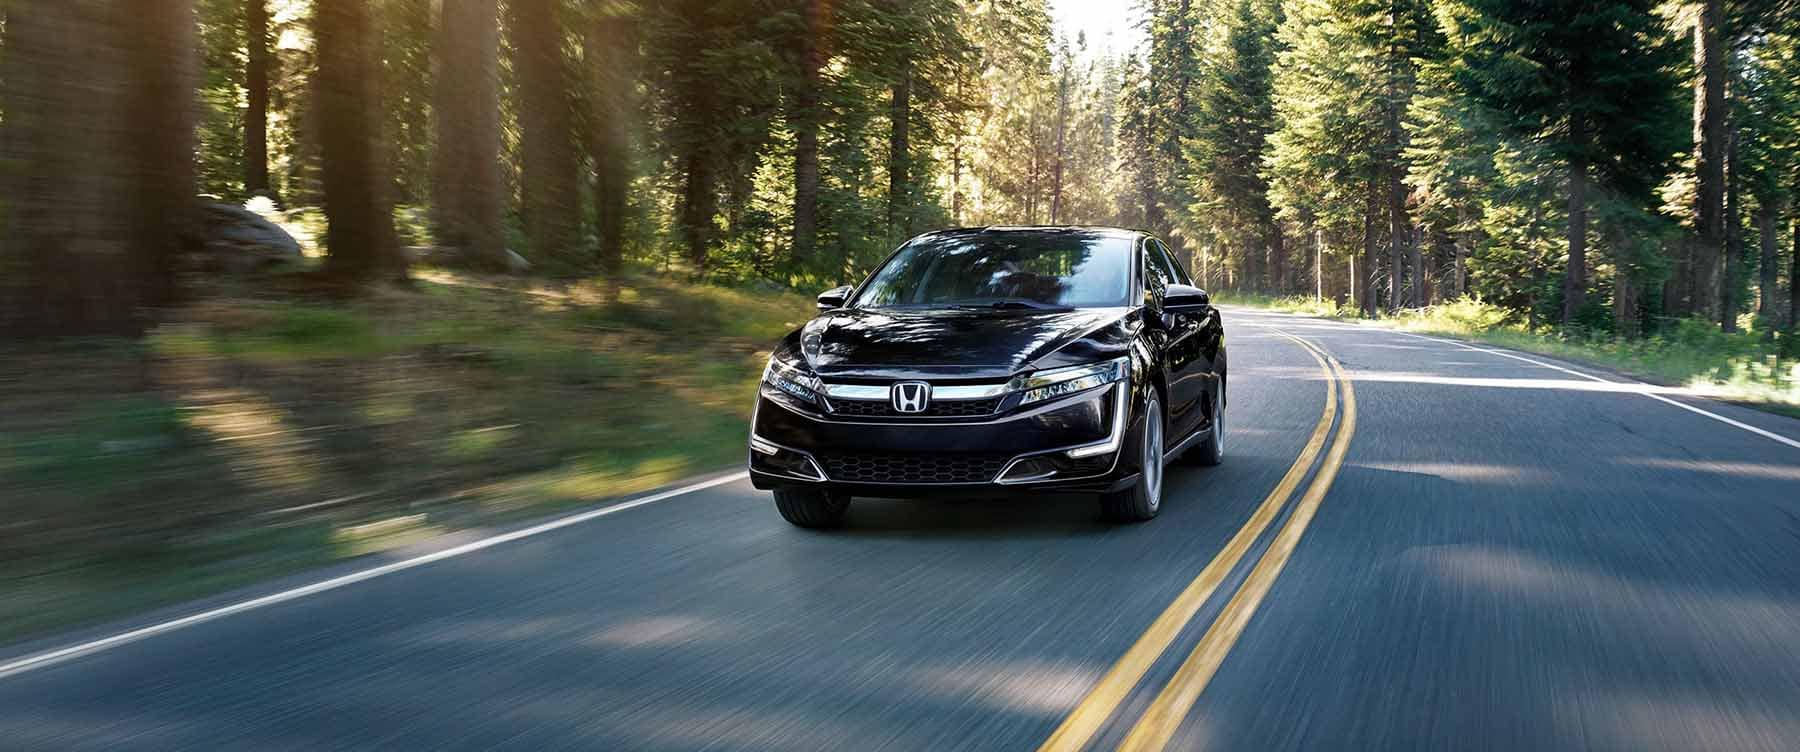 2018 Honda Clairty Plug In Hybrid Driving Down Tree Lined Street